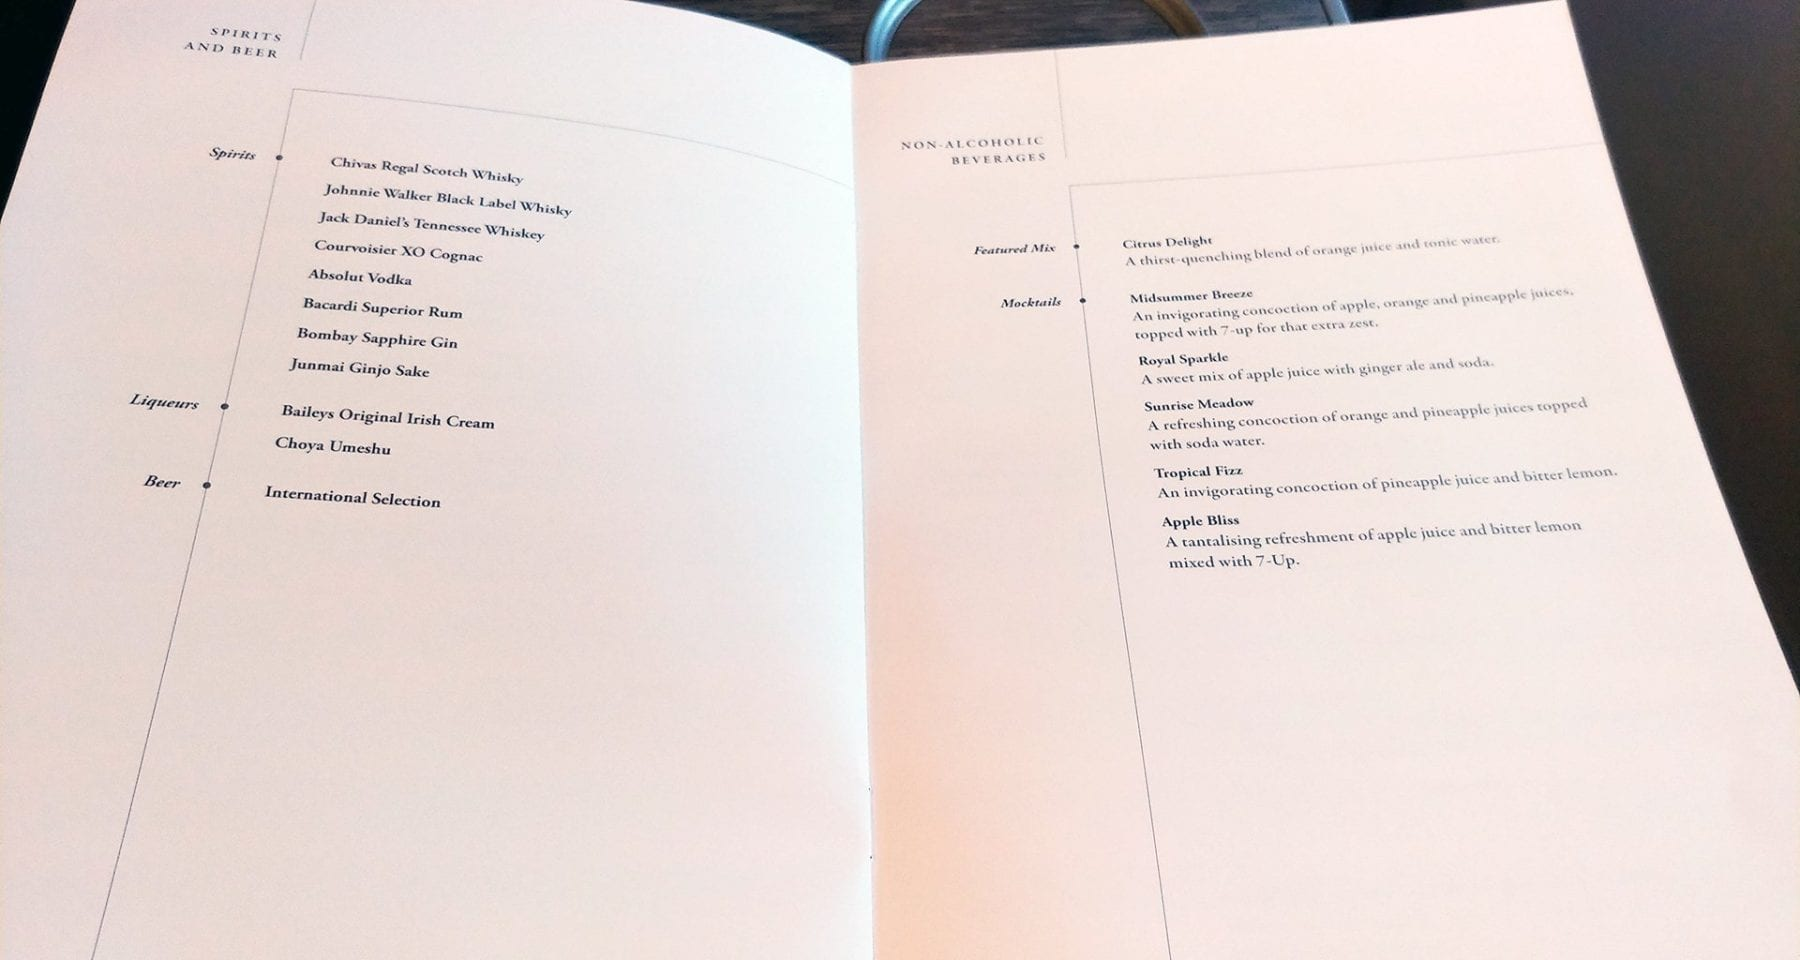 Singapore Airlines Business Class wines and drinks menu